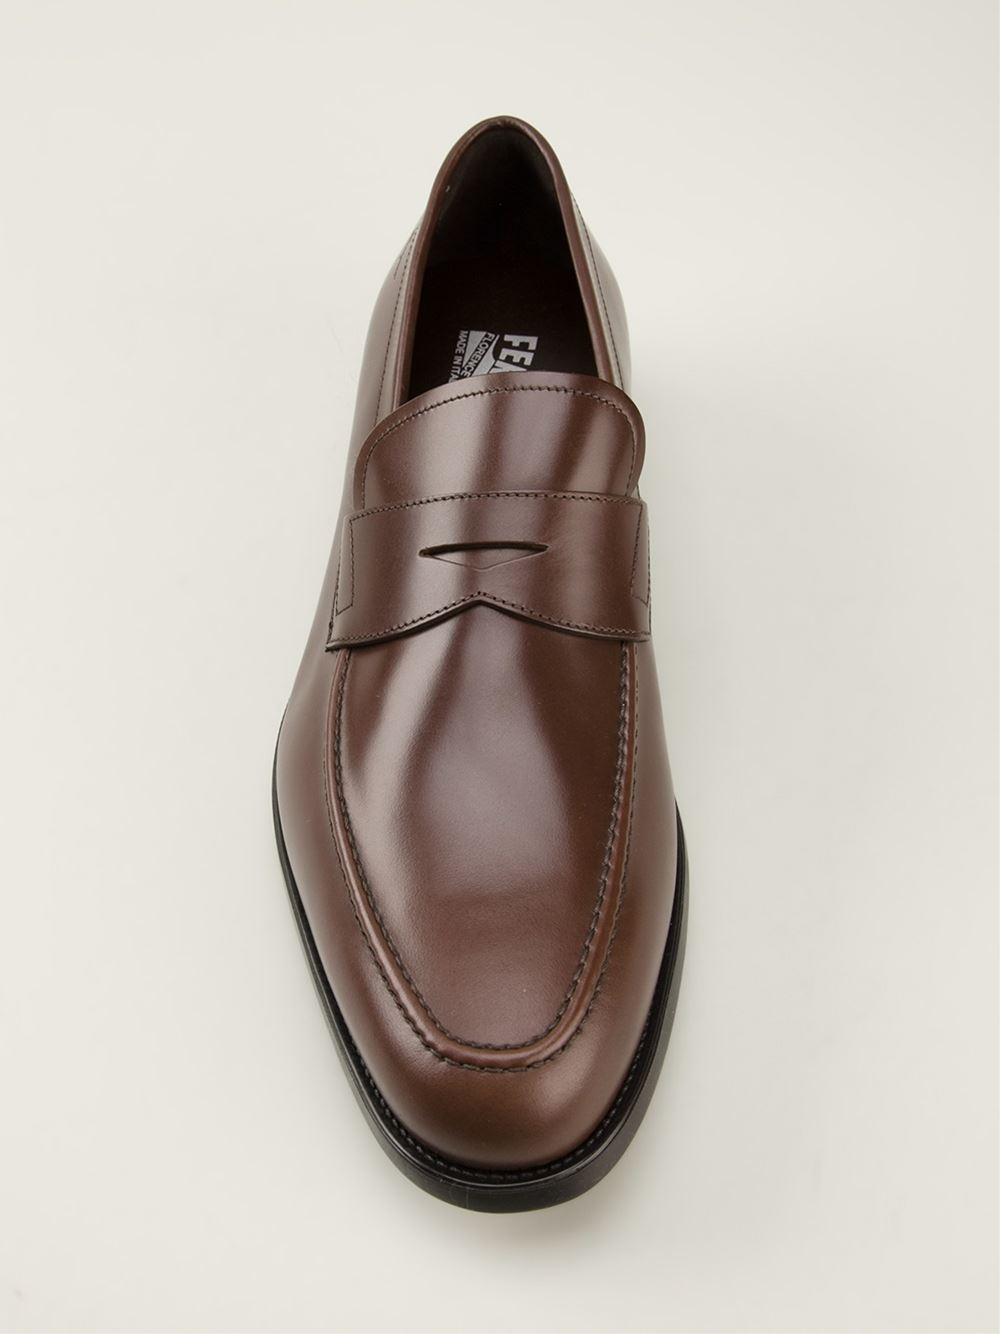 Ferragamo Penny Loafers in Brown for